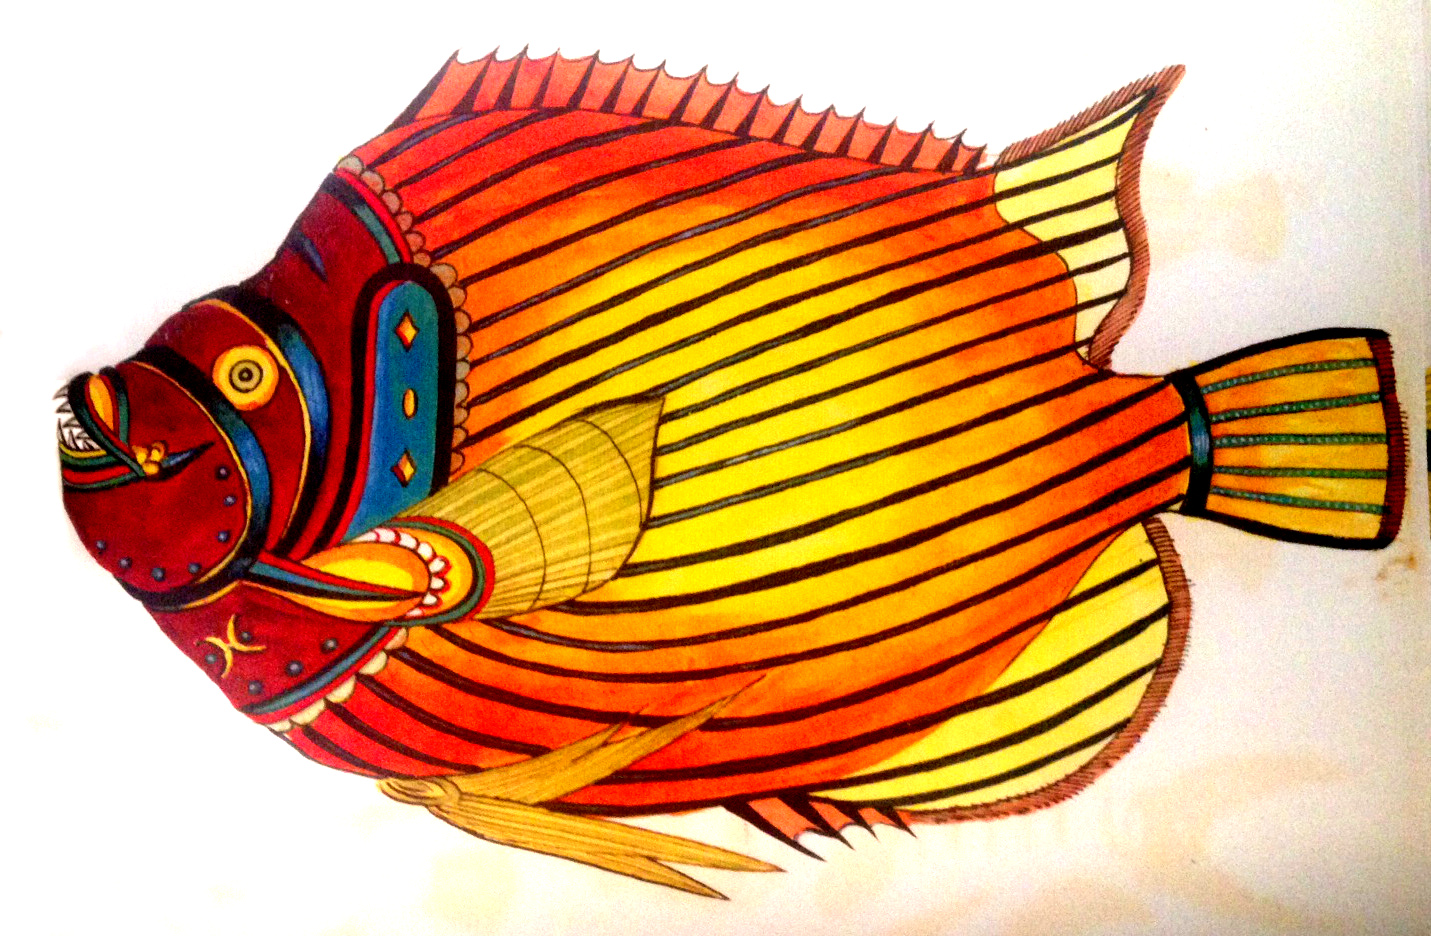 The Imperator Angelfish. Fallours accurately depicts the Pacific Ocean form, with its threadlike extension of the dorsal fin.